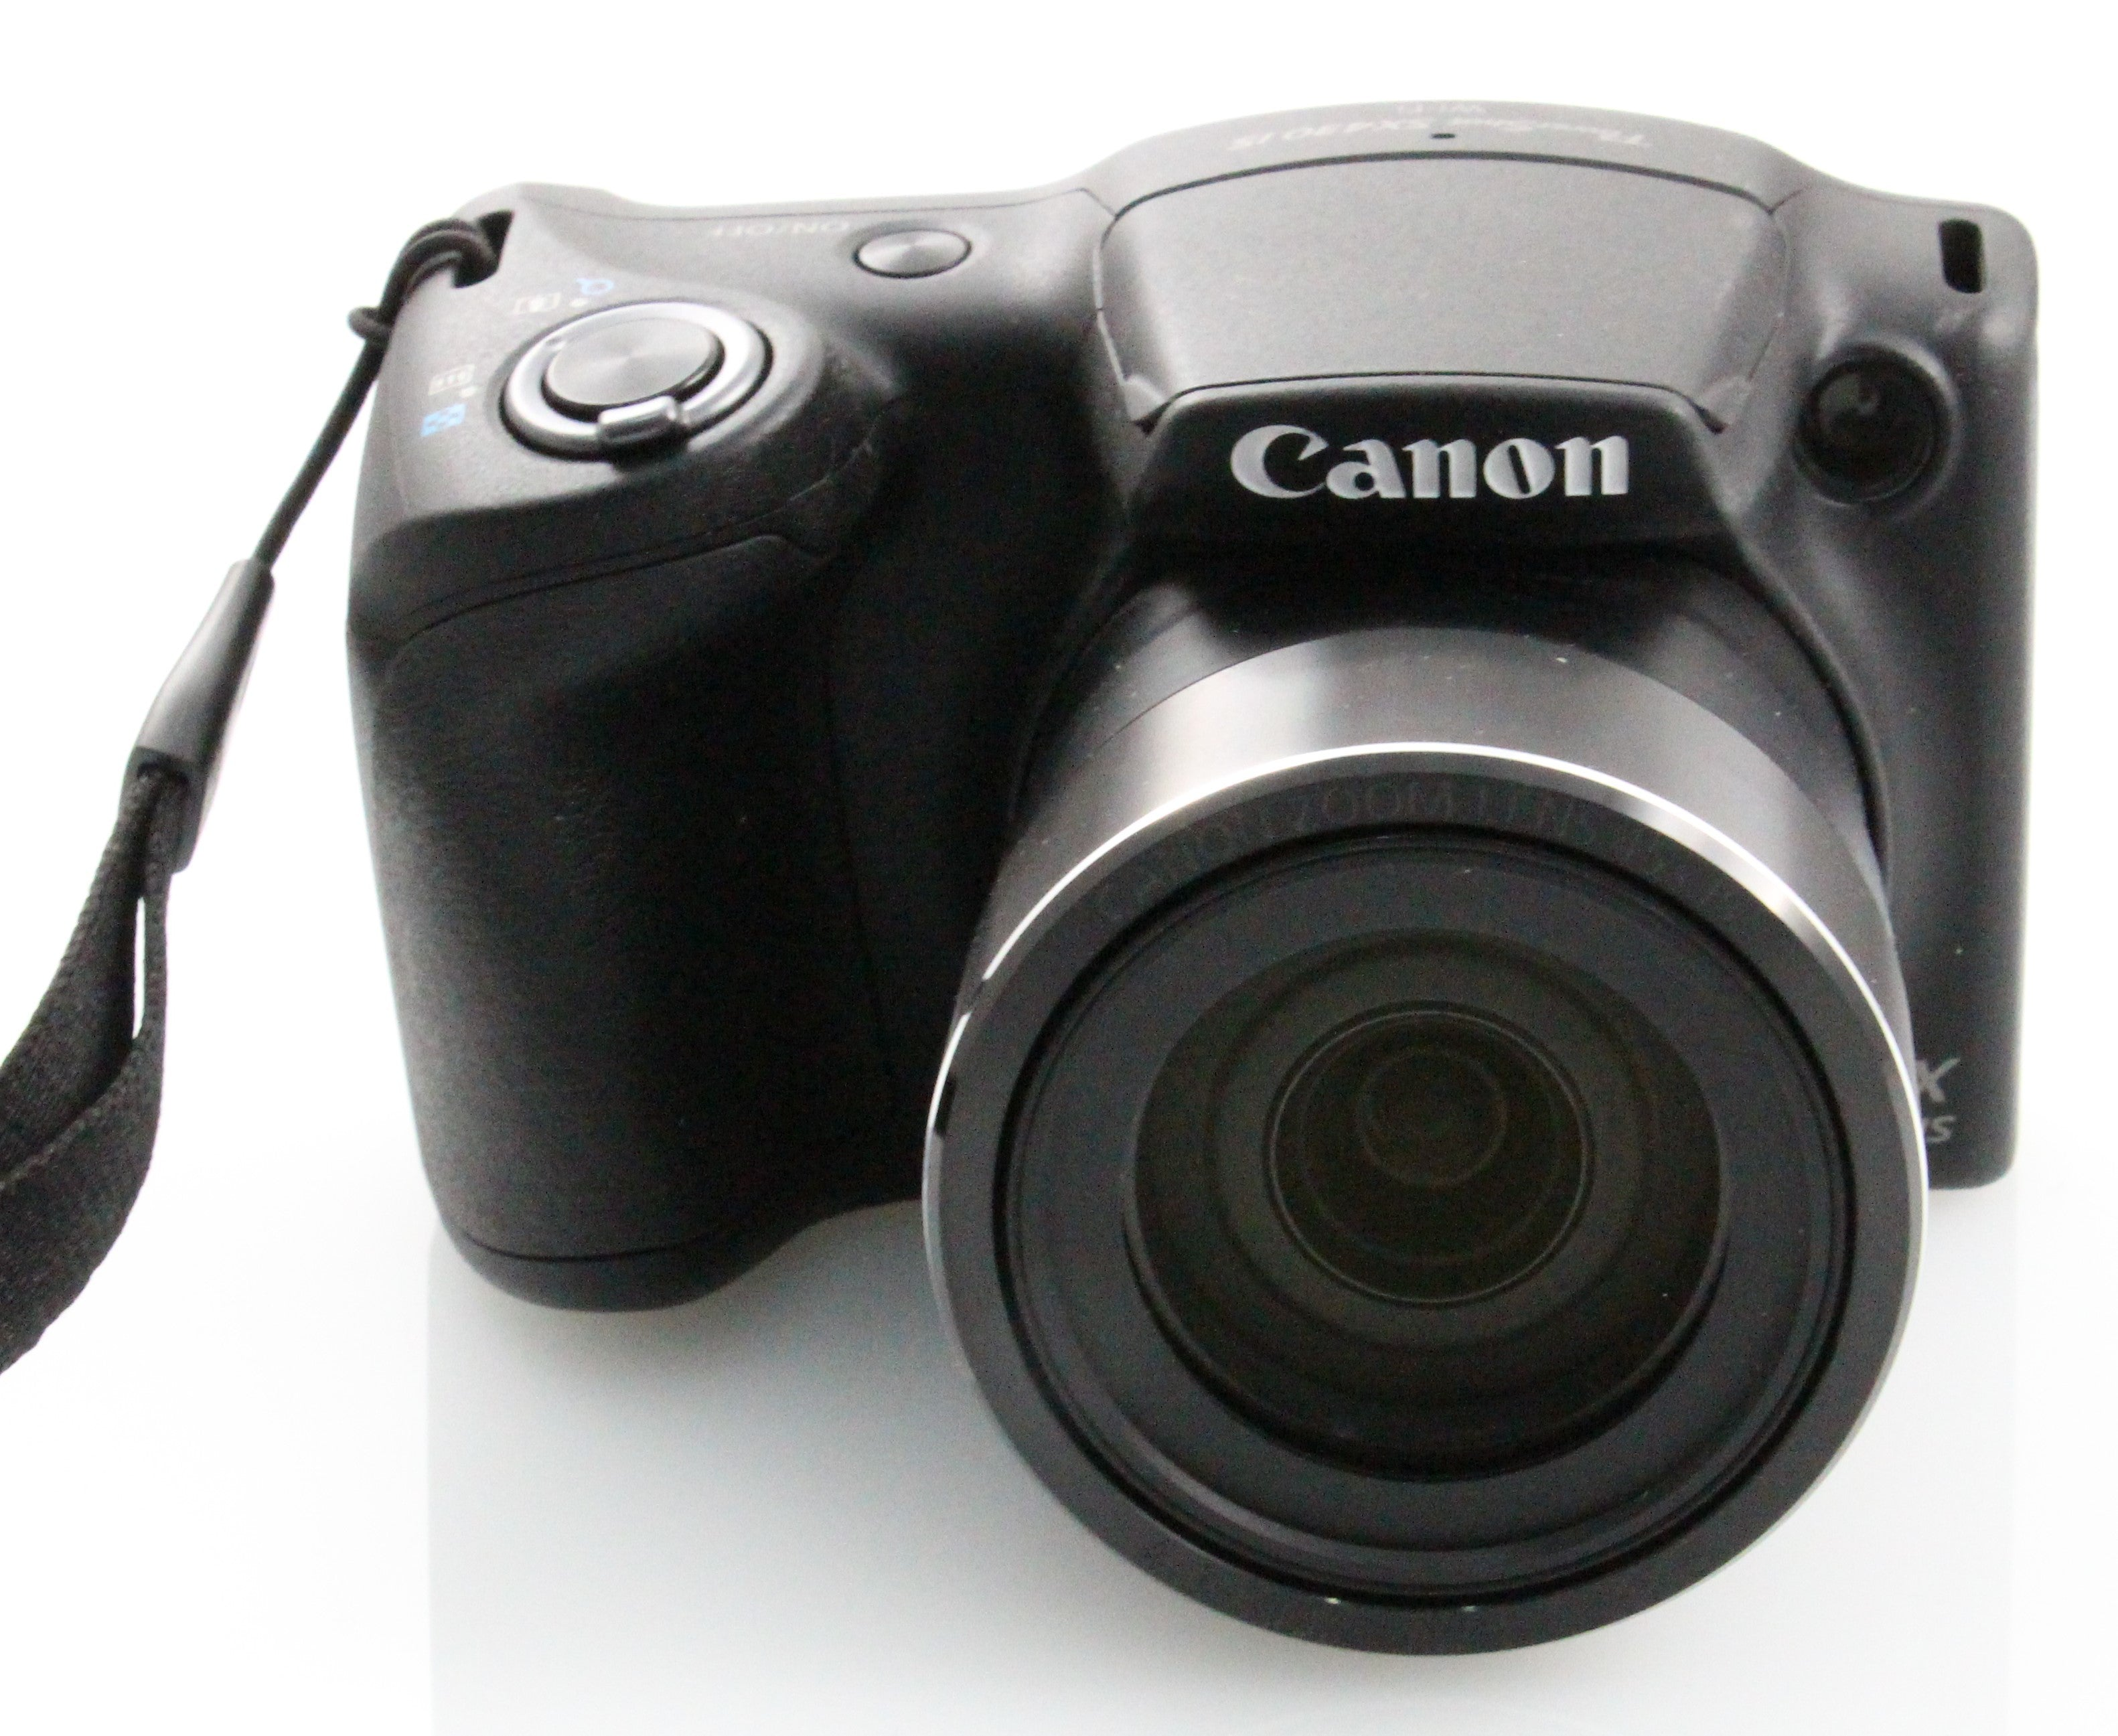 Canon Power Shot SX430 IS Camera - Black